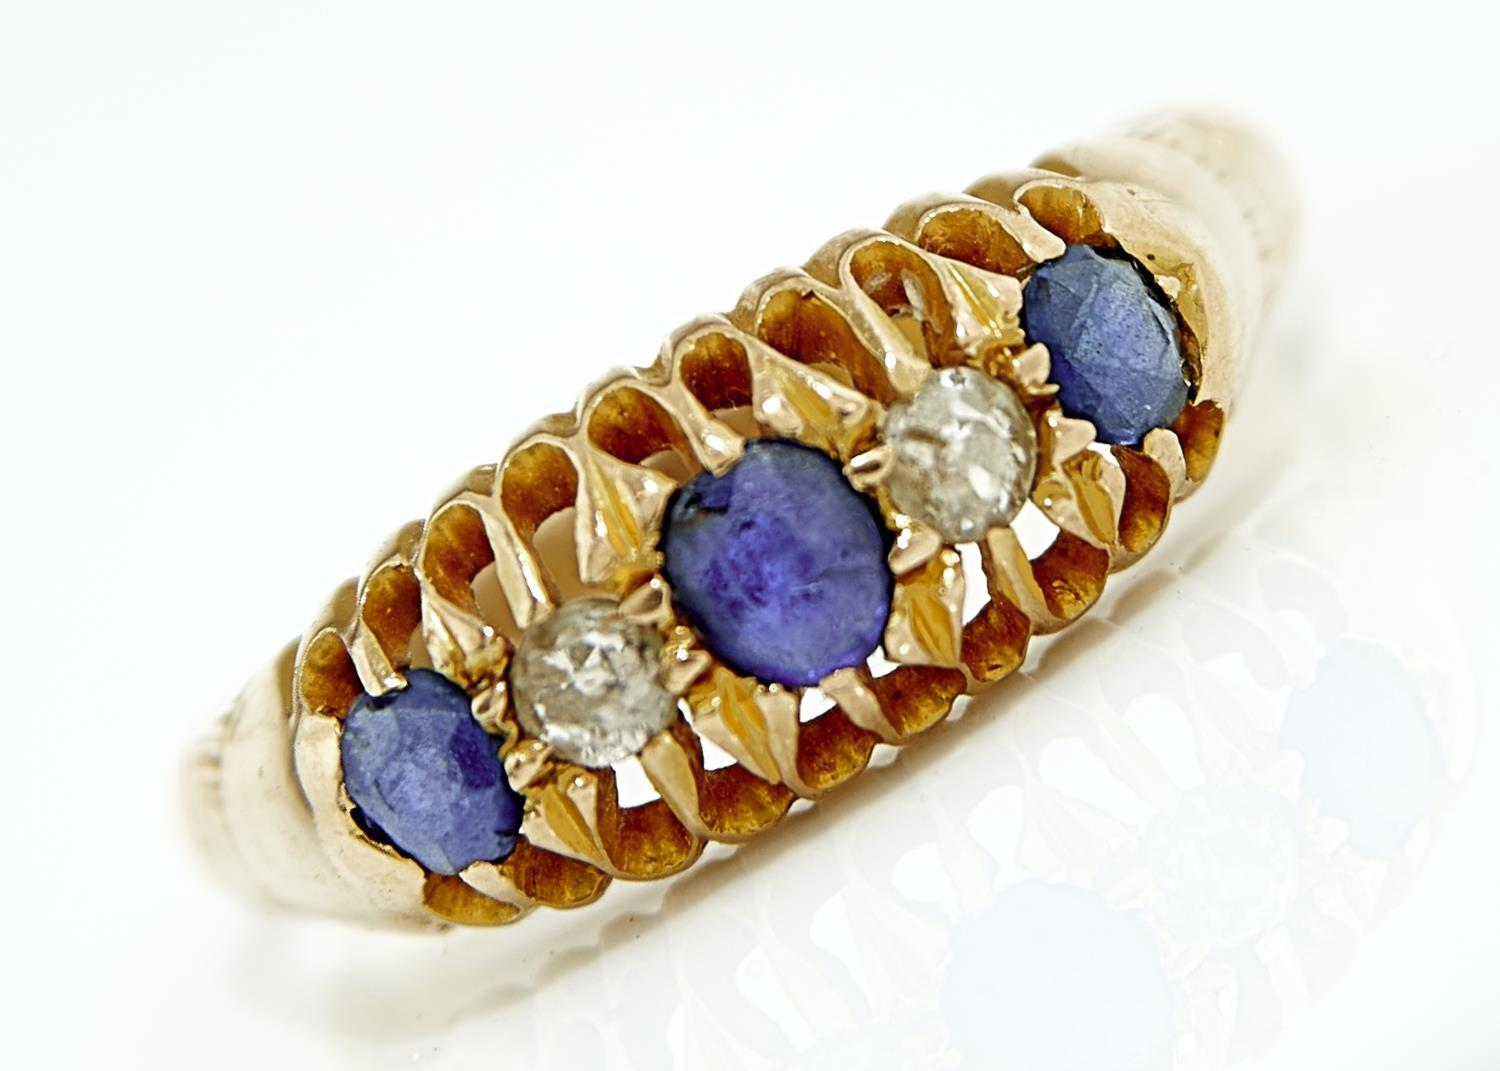 A FIVE STONE SAPPHIRE AND DIAMOND RING,  IN 18CT GOLD,  CHESTER 1911. 3.6G,  SIZE Q Stones